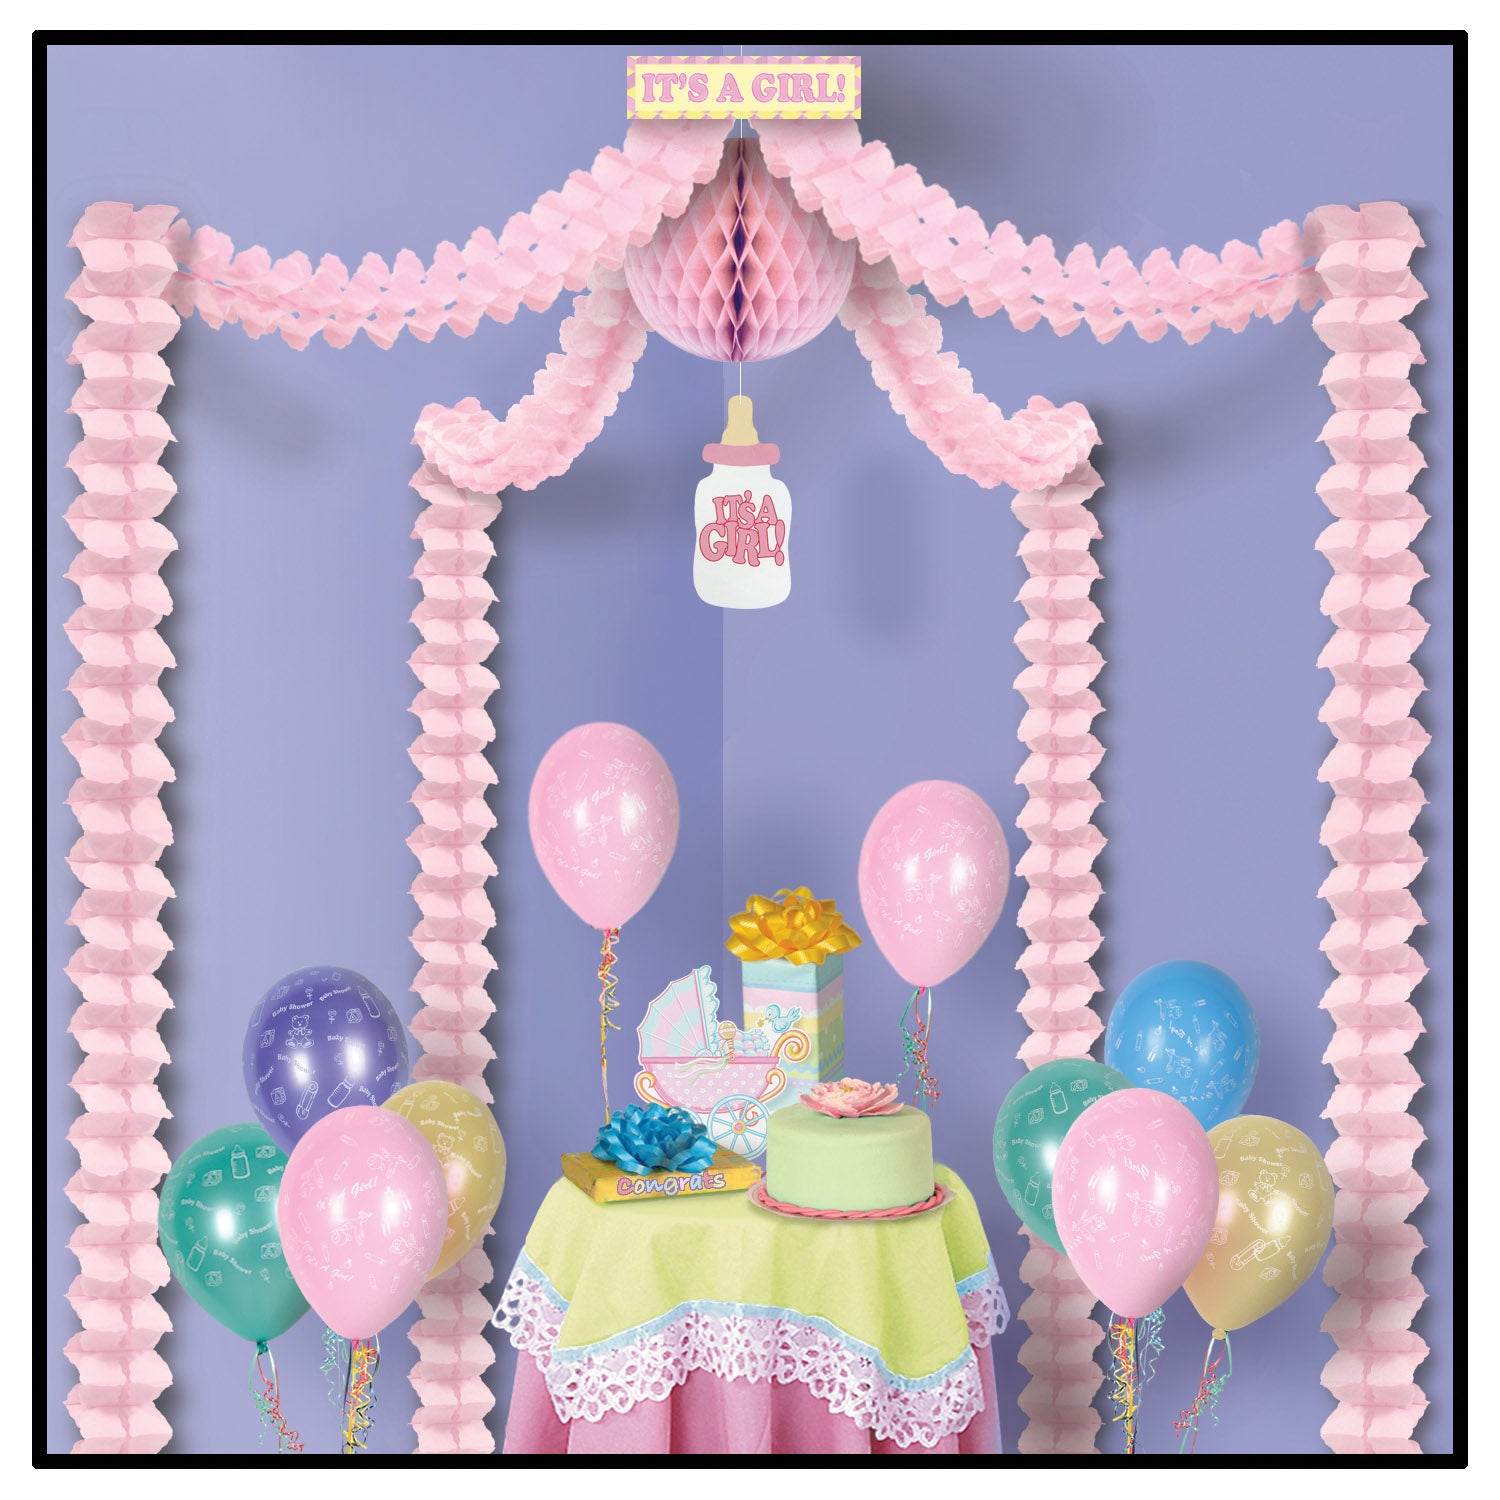 It's A Girl! Party Canopy by Beistle - Baby Shower Theme Decorations